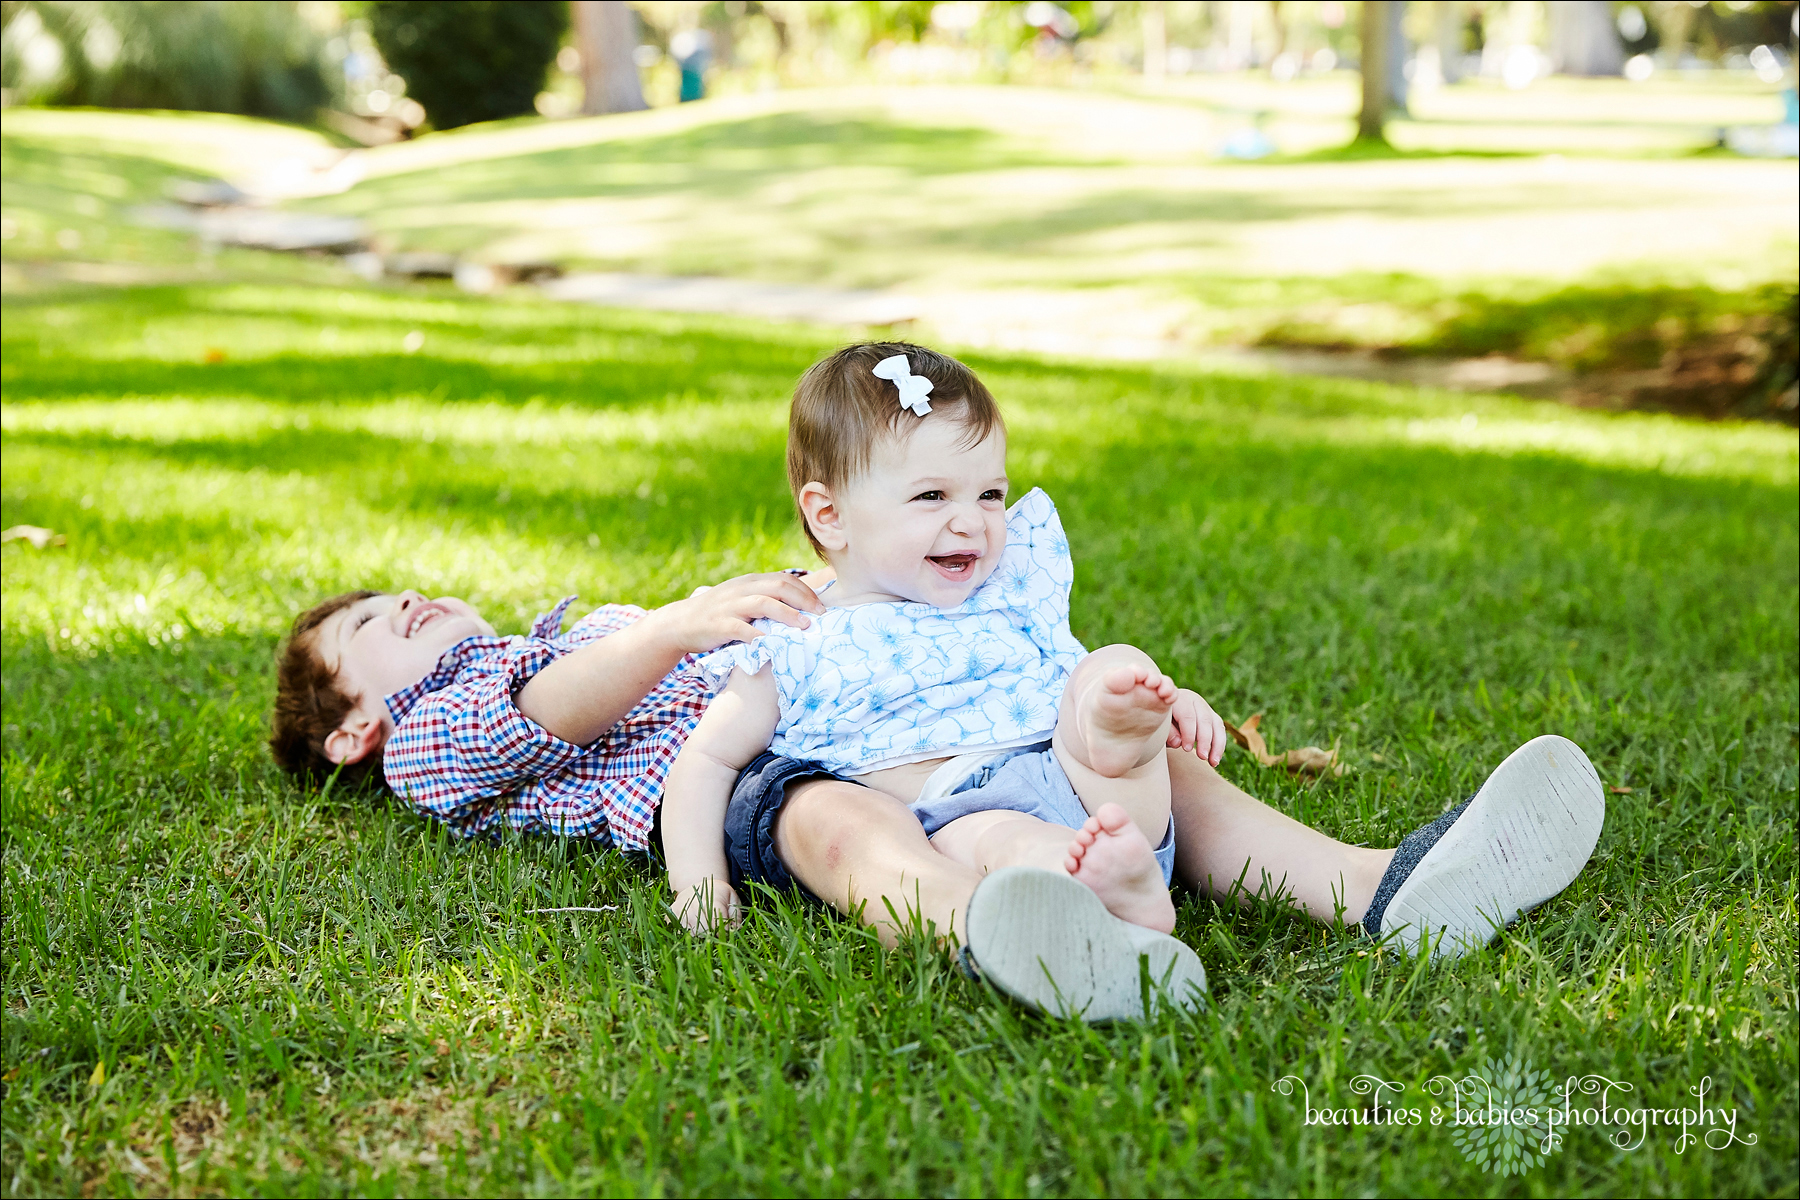 Los Angeles outdoor natural light park photography professional kids and family photographer